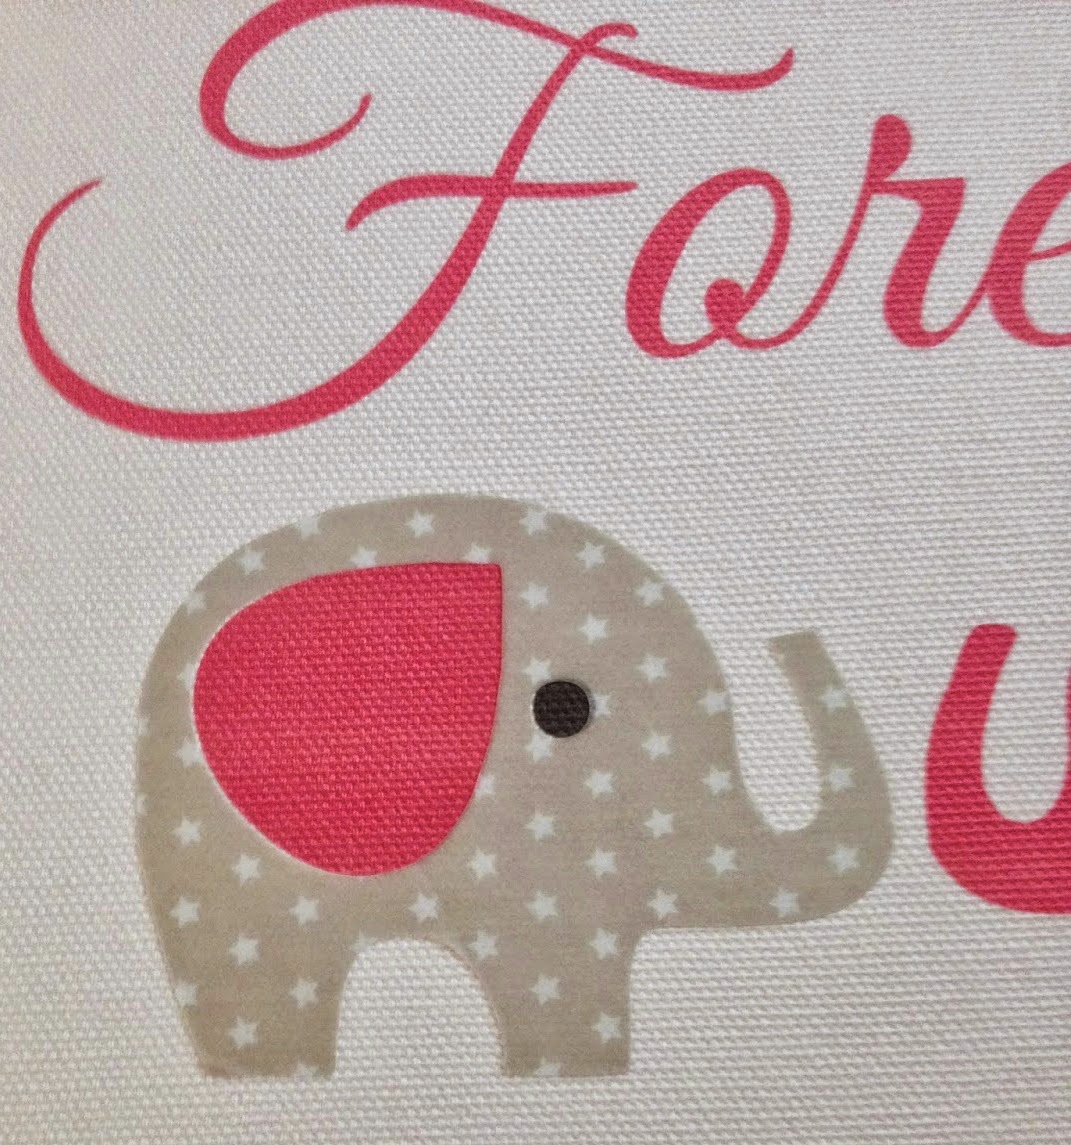 DIY, do it yourself, nursery, art, Silhouette Tutorial, elephant, text, canvas